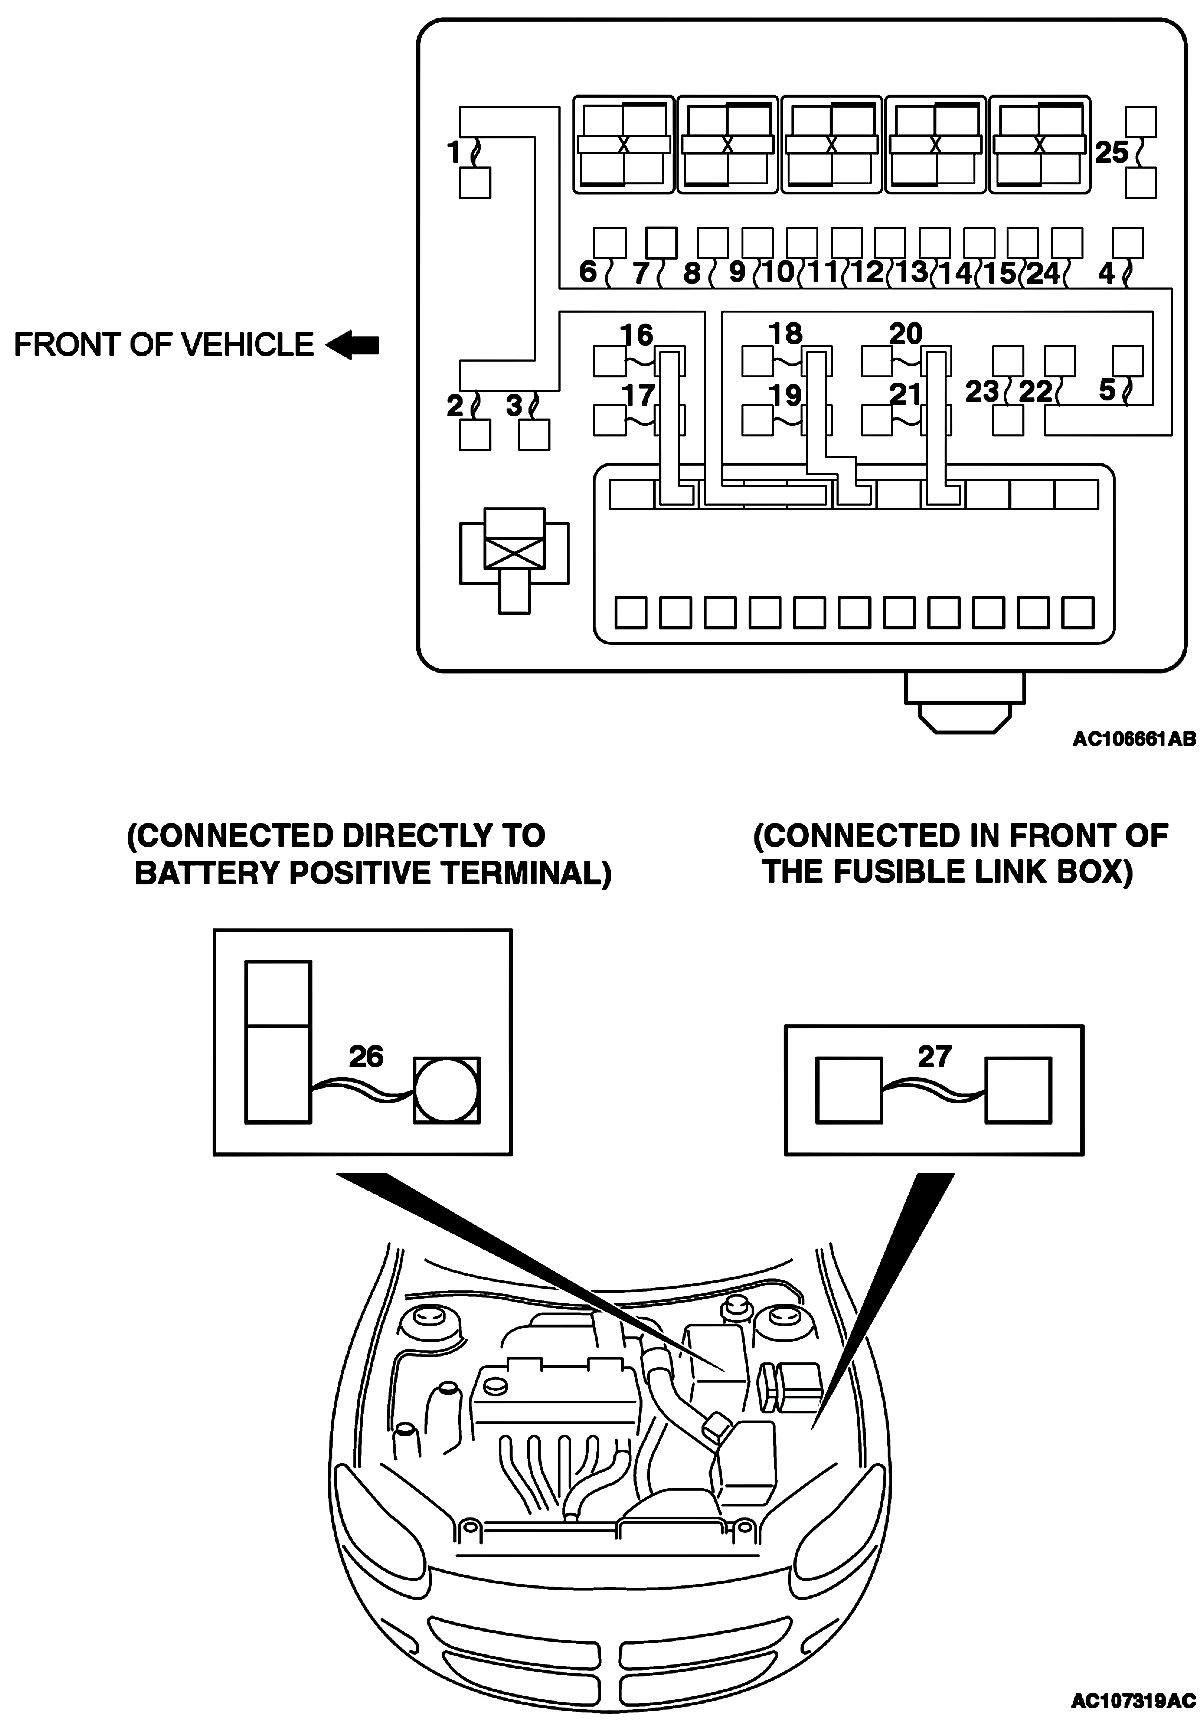 2004 Chrysler Sebring Fuse Box Power Detailed Schematic Diagrams Crossfire Diagram Pacifica Fwd